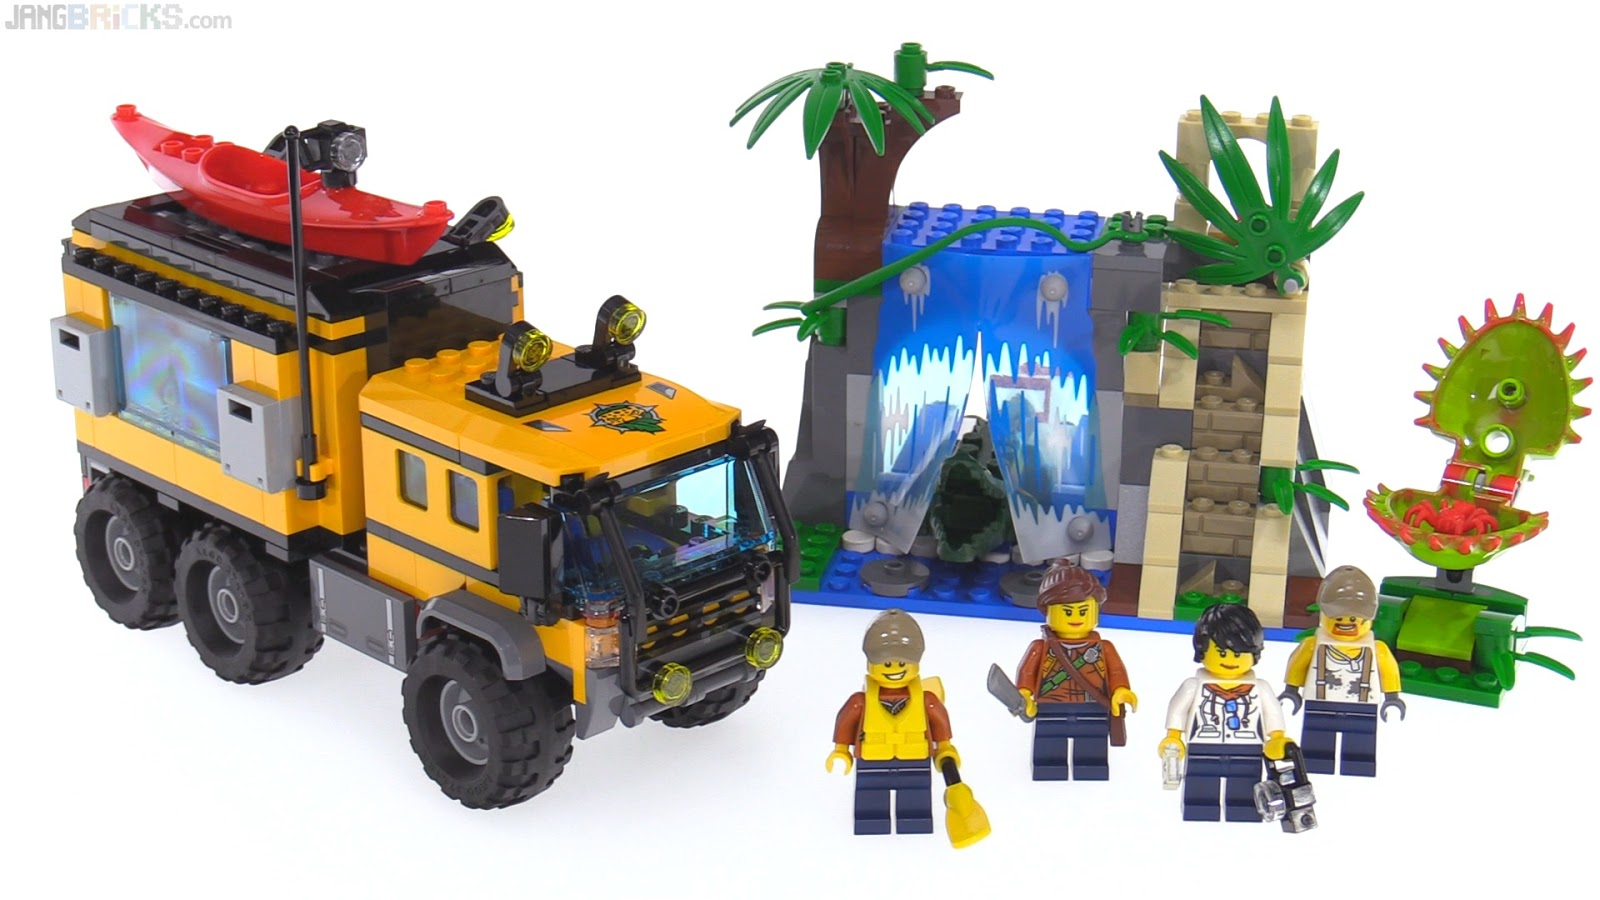 LEGO City Jungle Mobile Lab review 60160